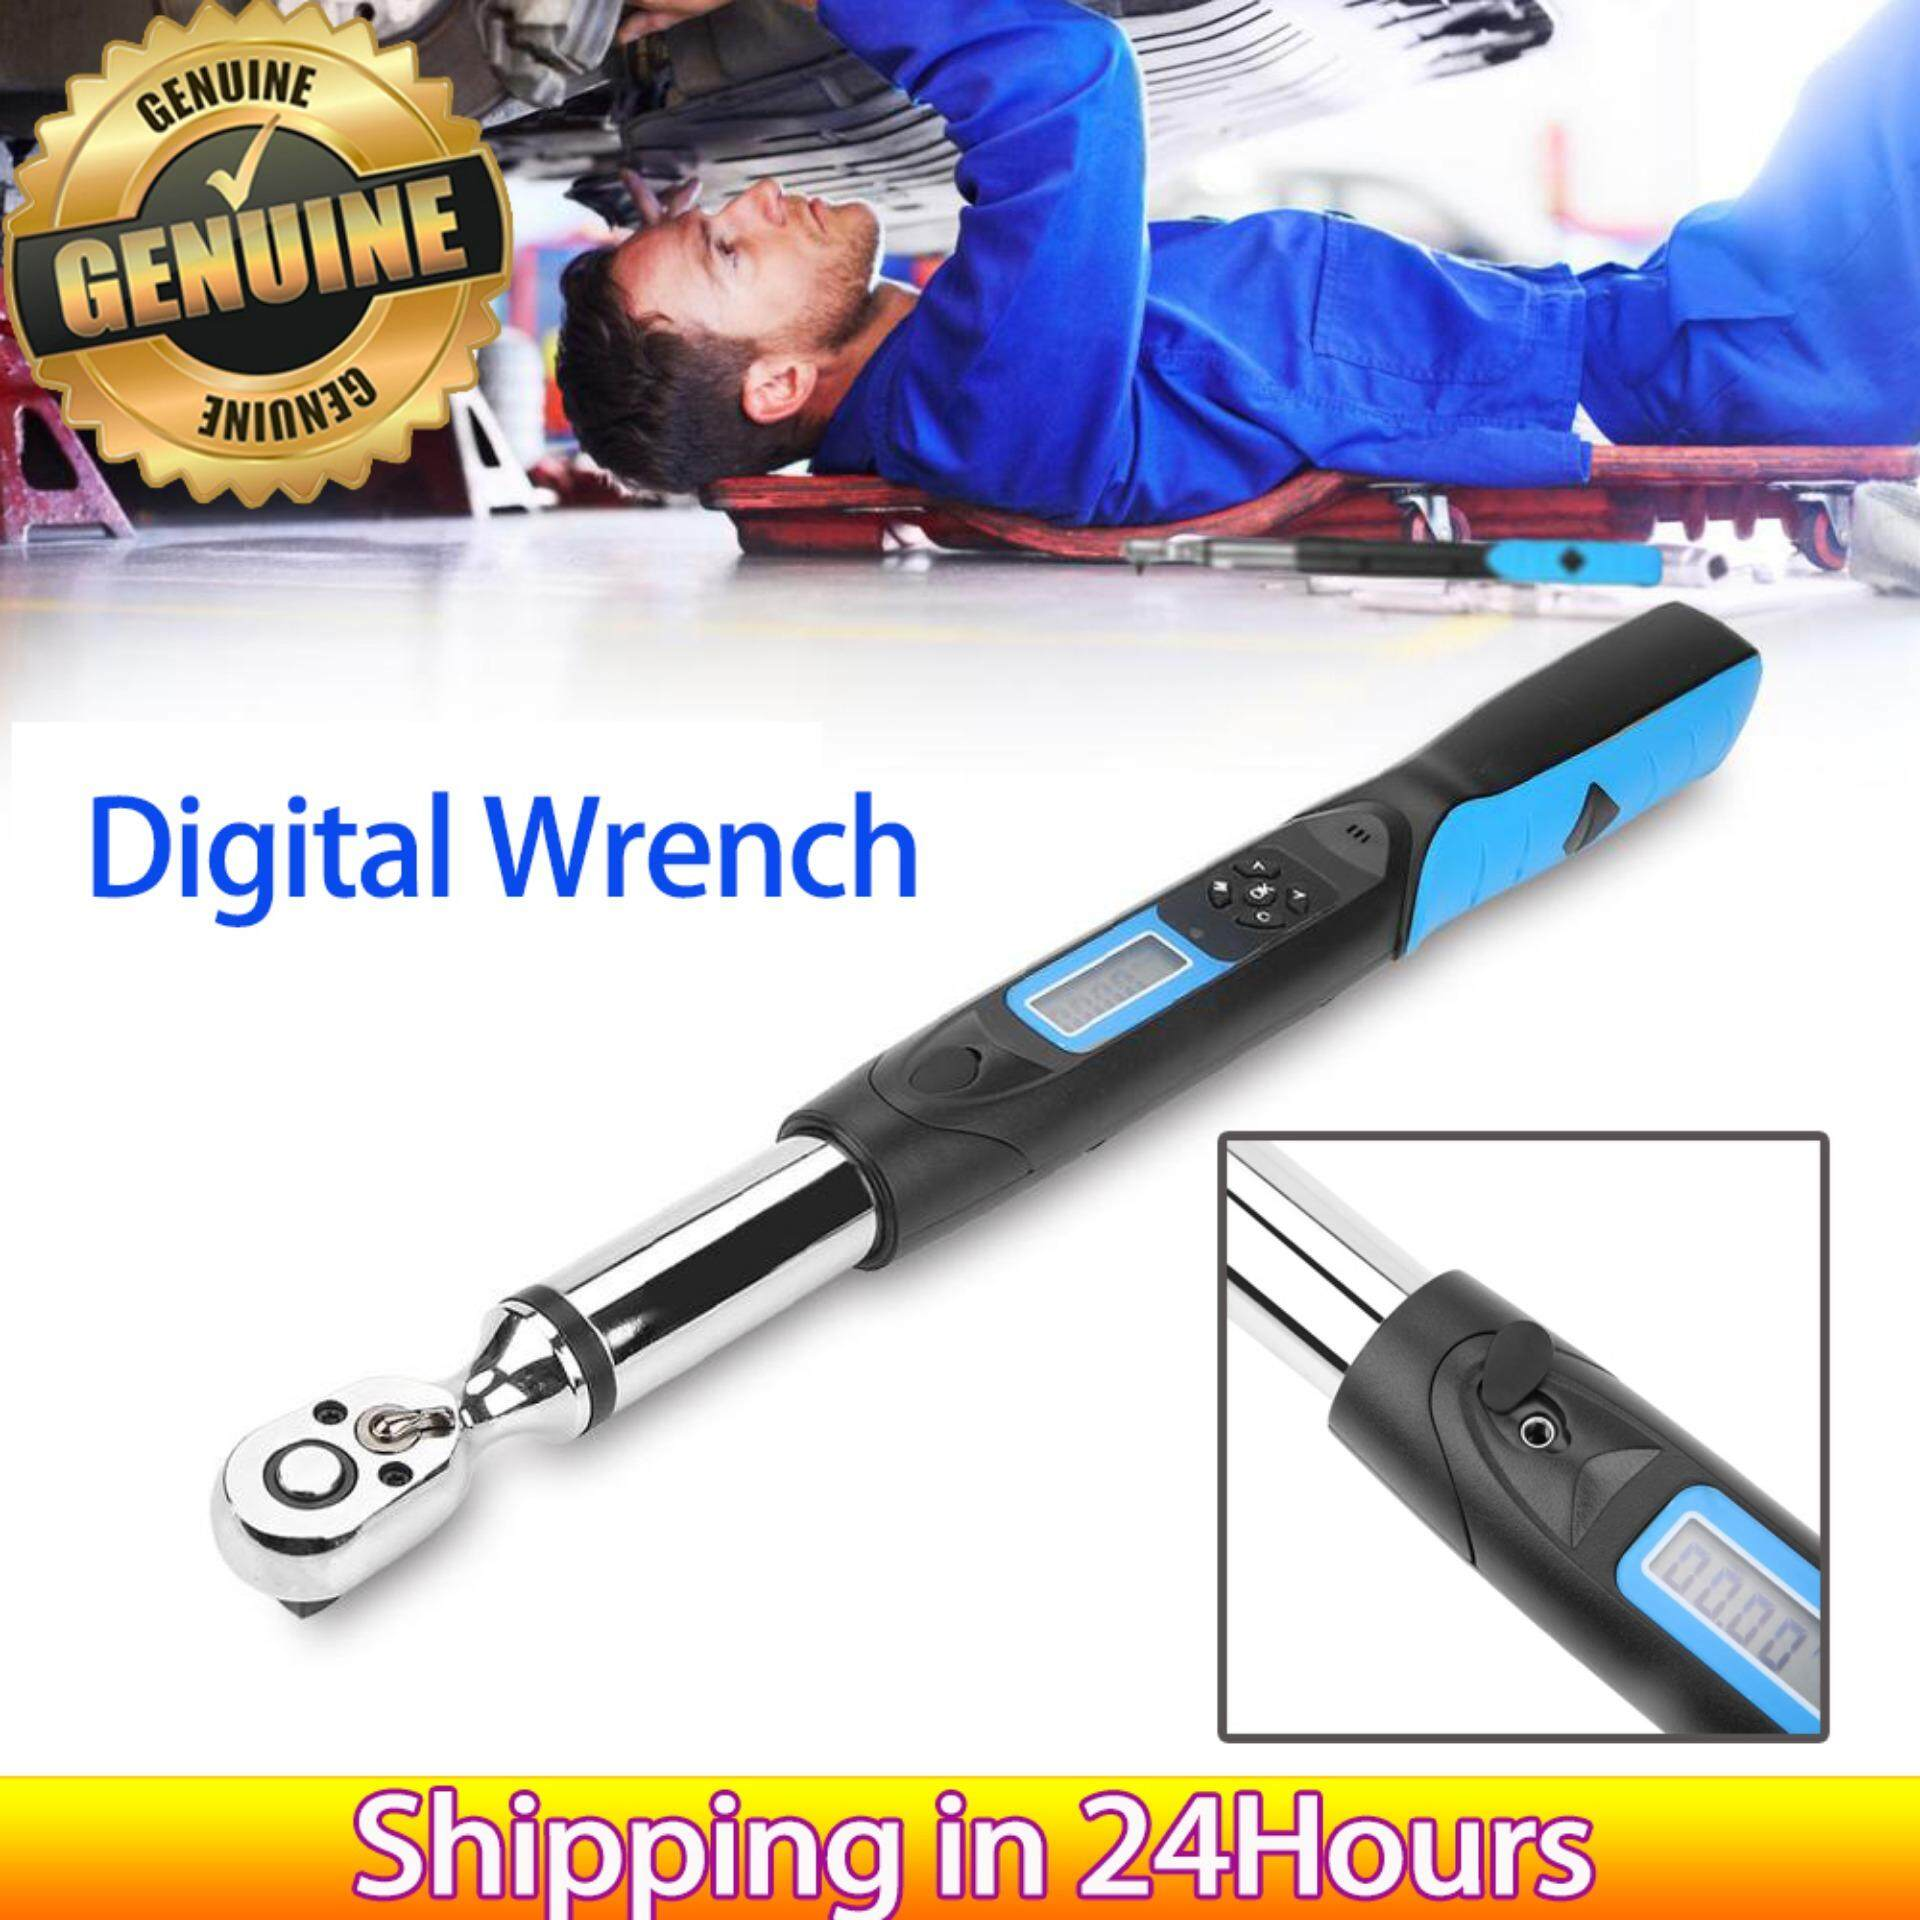 Stainless Steel 85N.m 3/8 Digital High Accuracy Torsion Bidirectional Ratchet Head Electronic Wrench